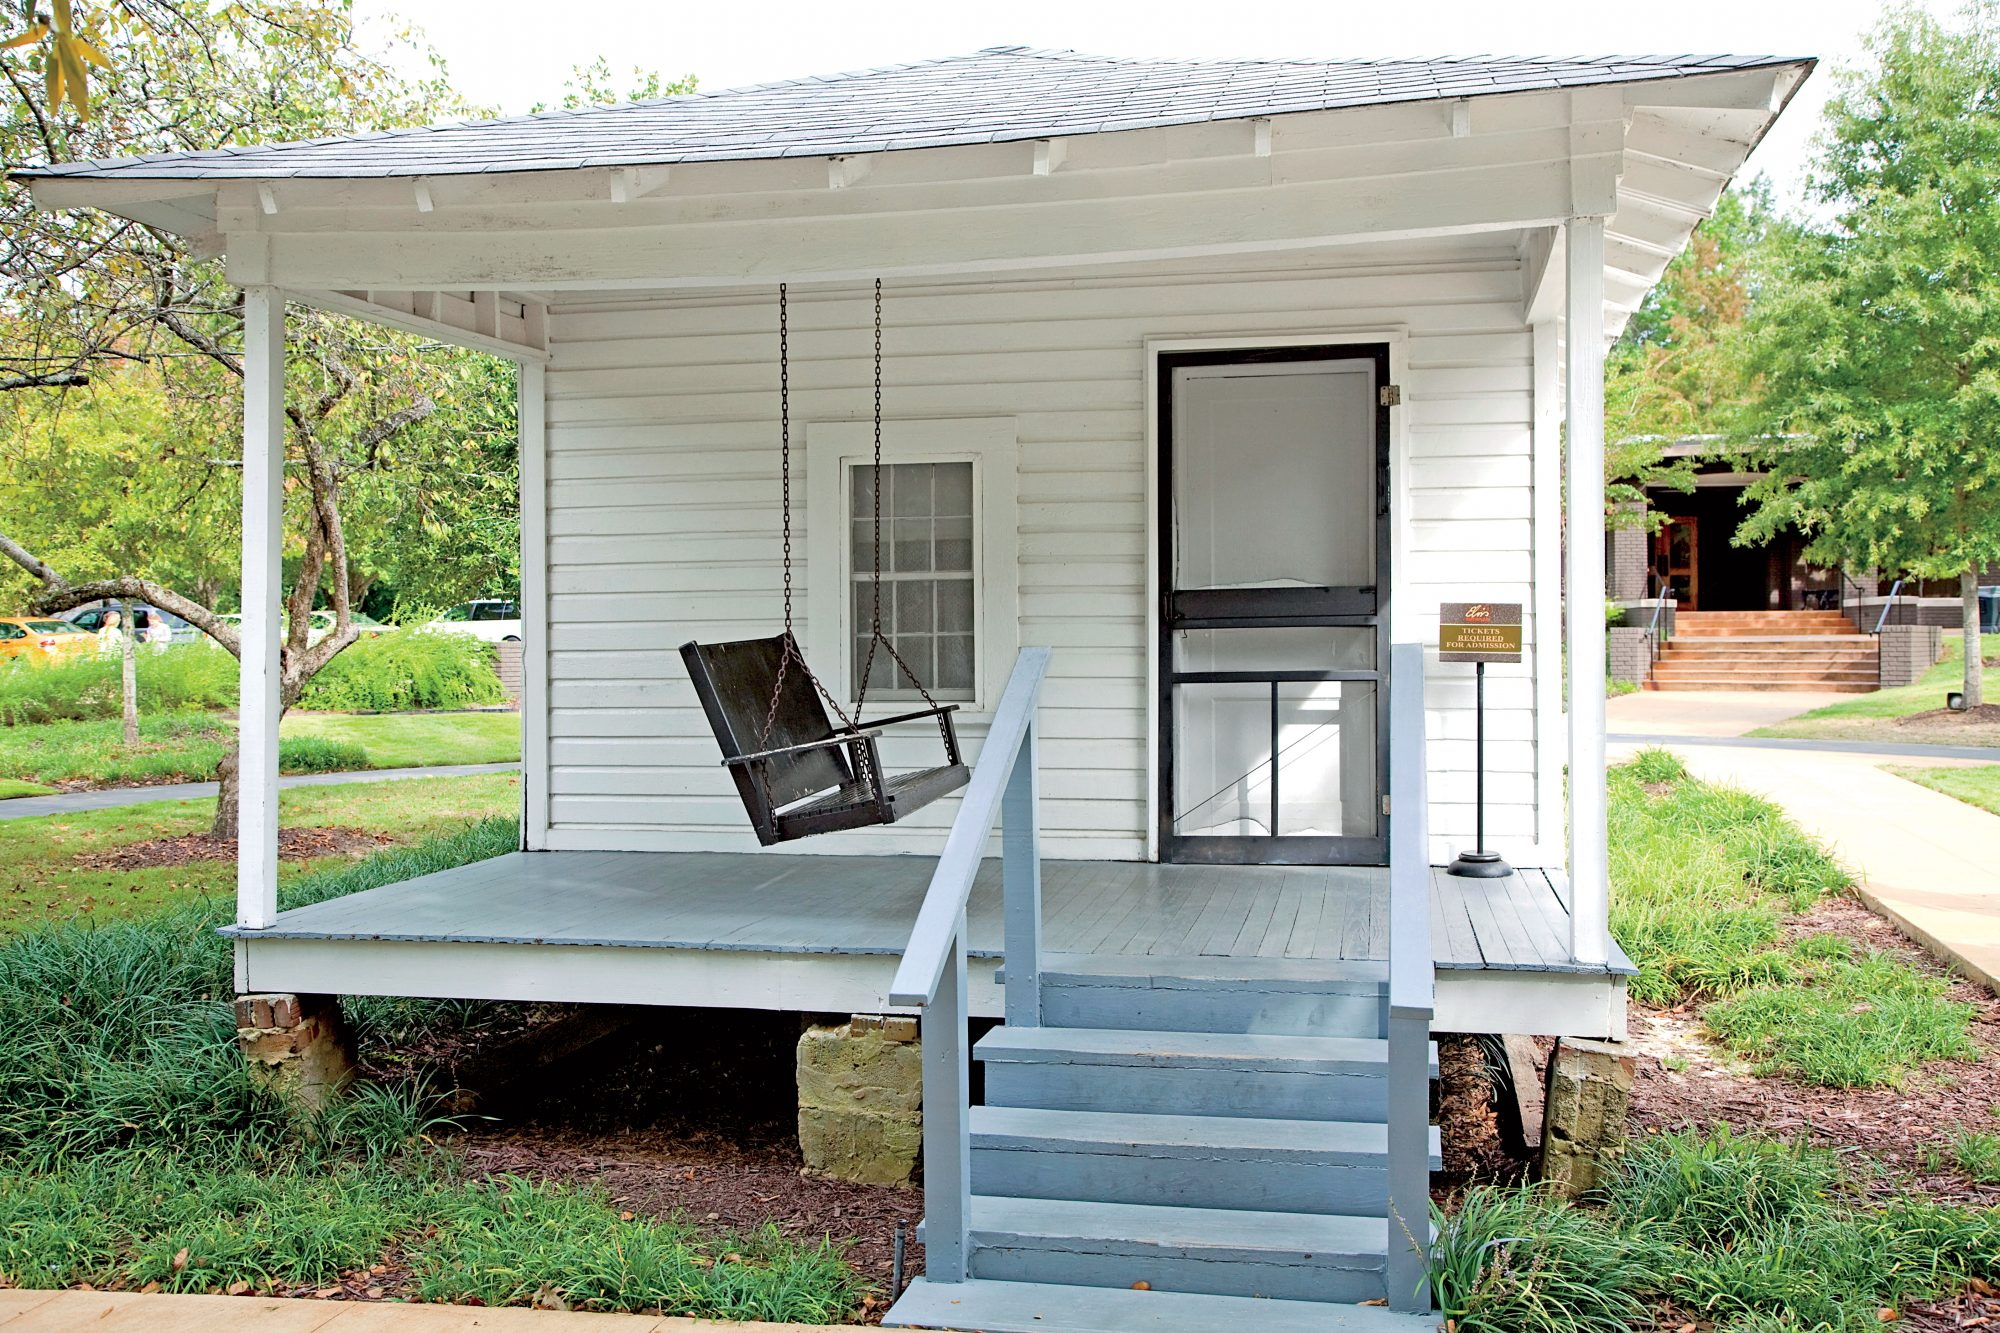 Elvis Presley Birthplace in Tupelo, MS